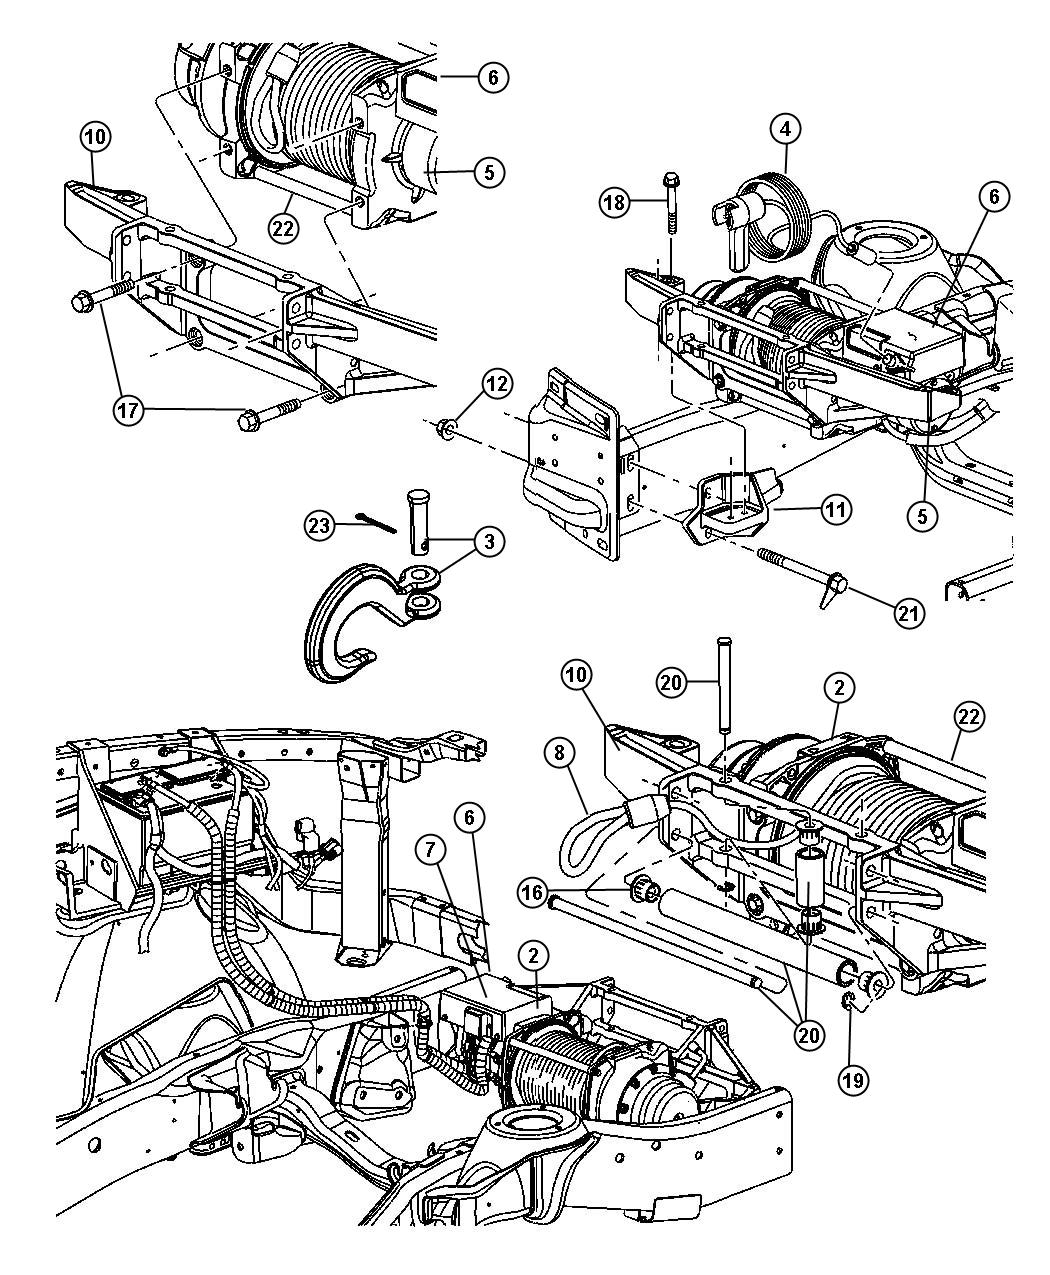 Warn 12k Winch Wiring Diagram